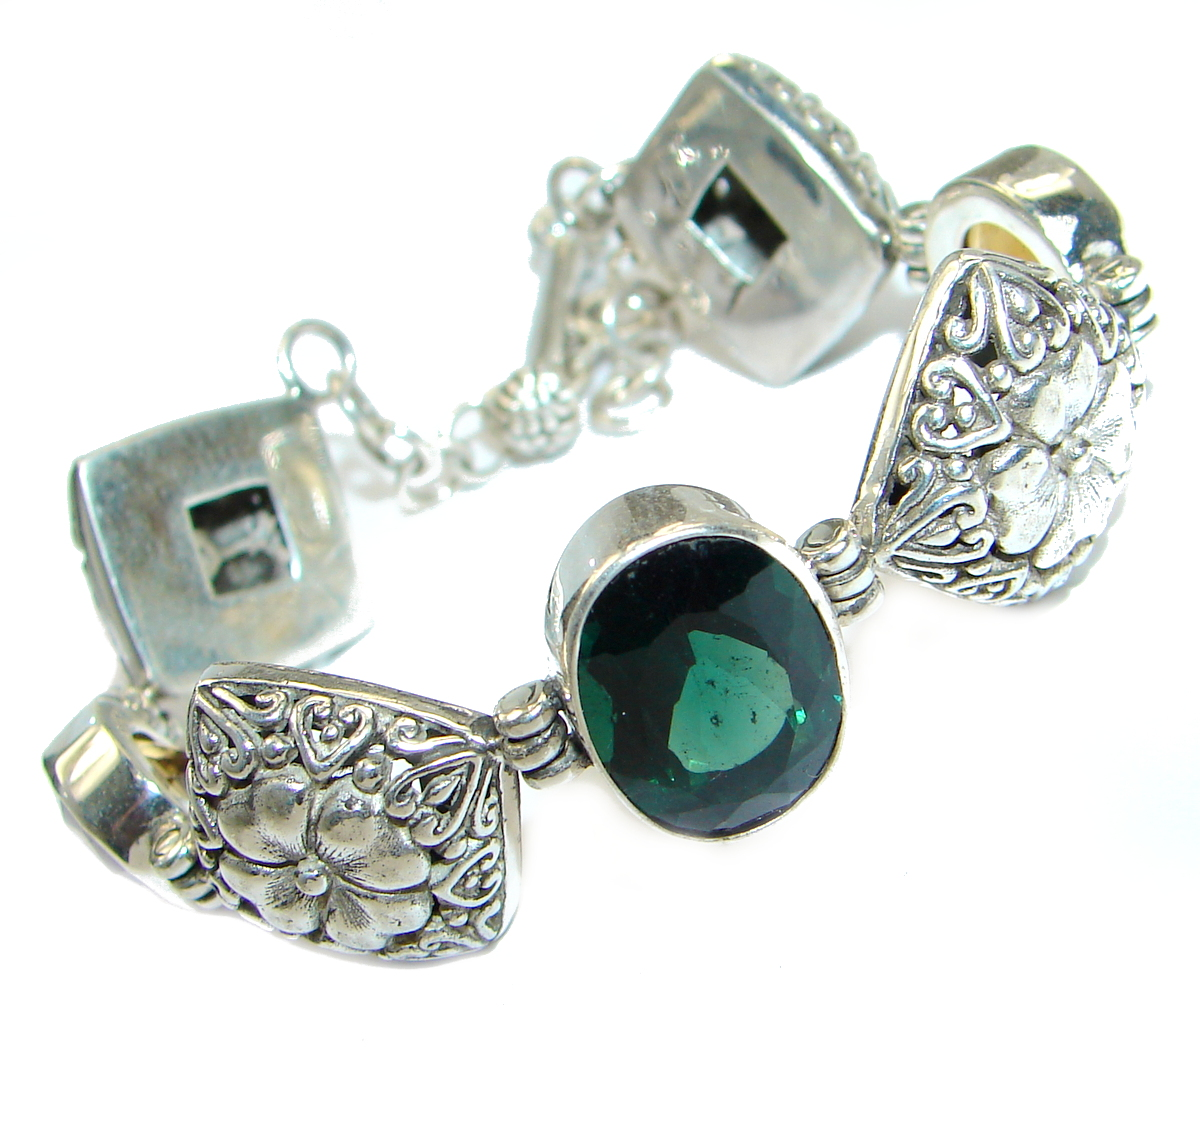 Rich Green Quartz .925 Sterling Silver handmade Bracelet